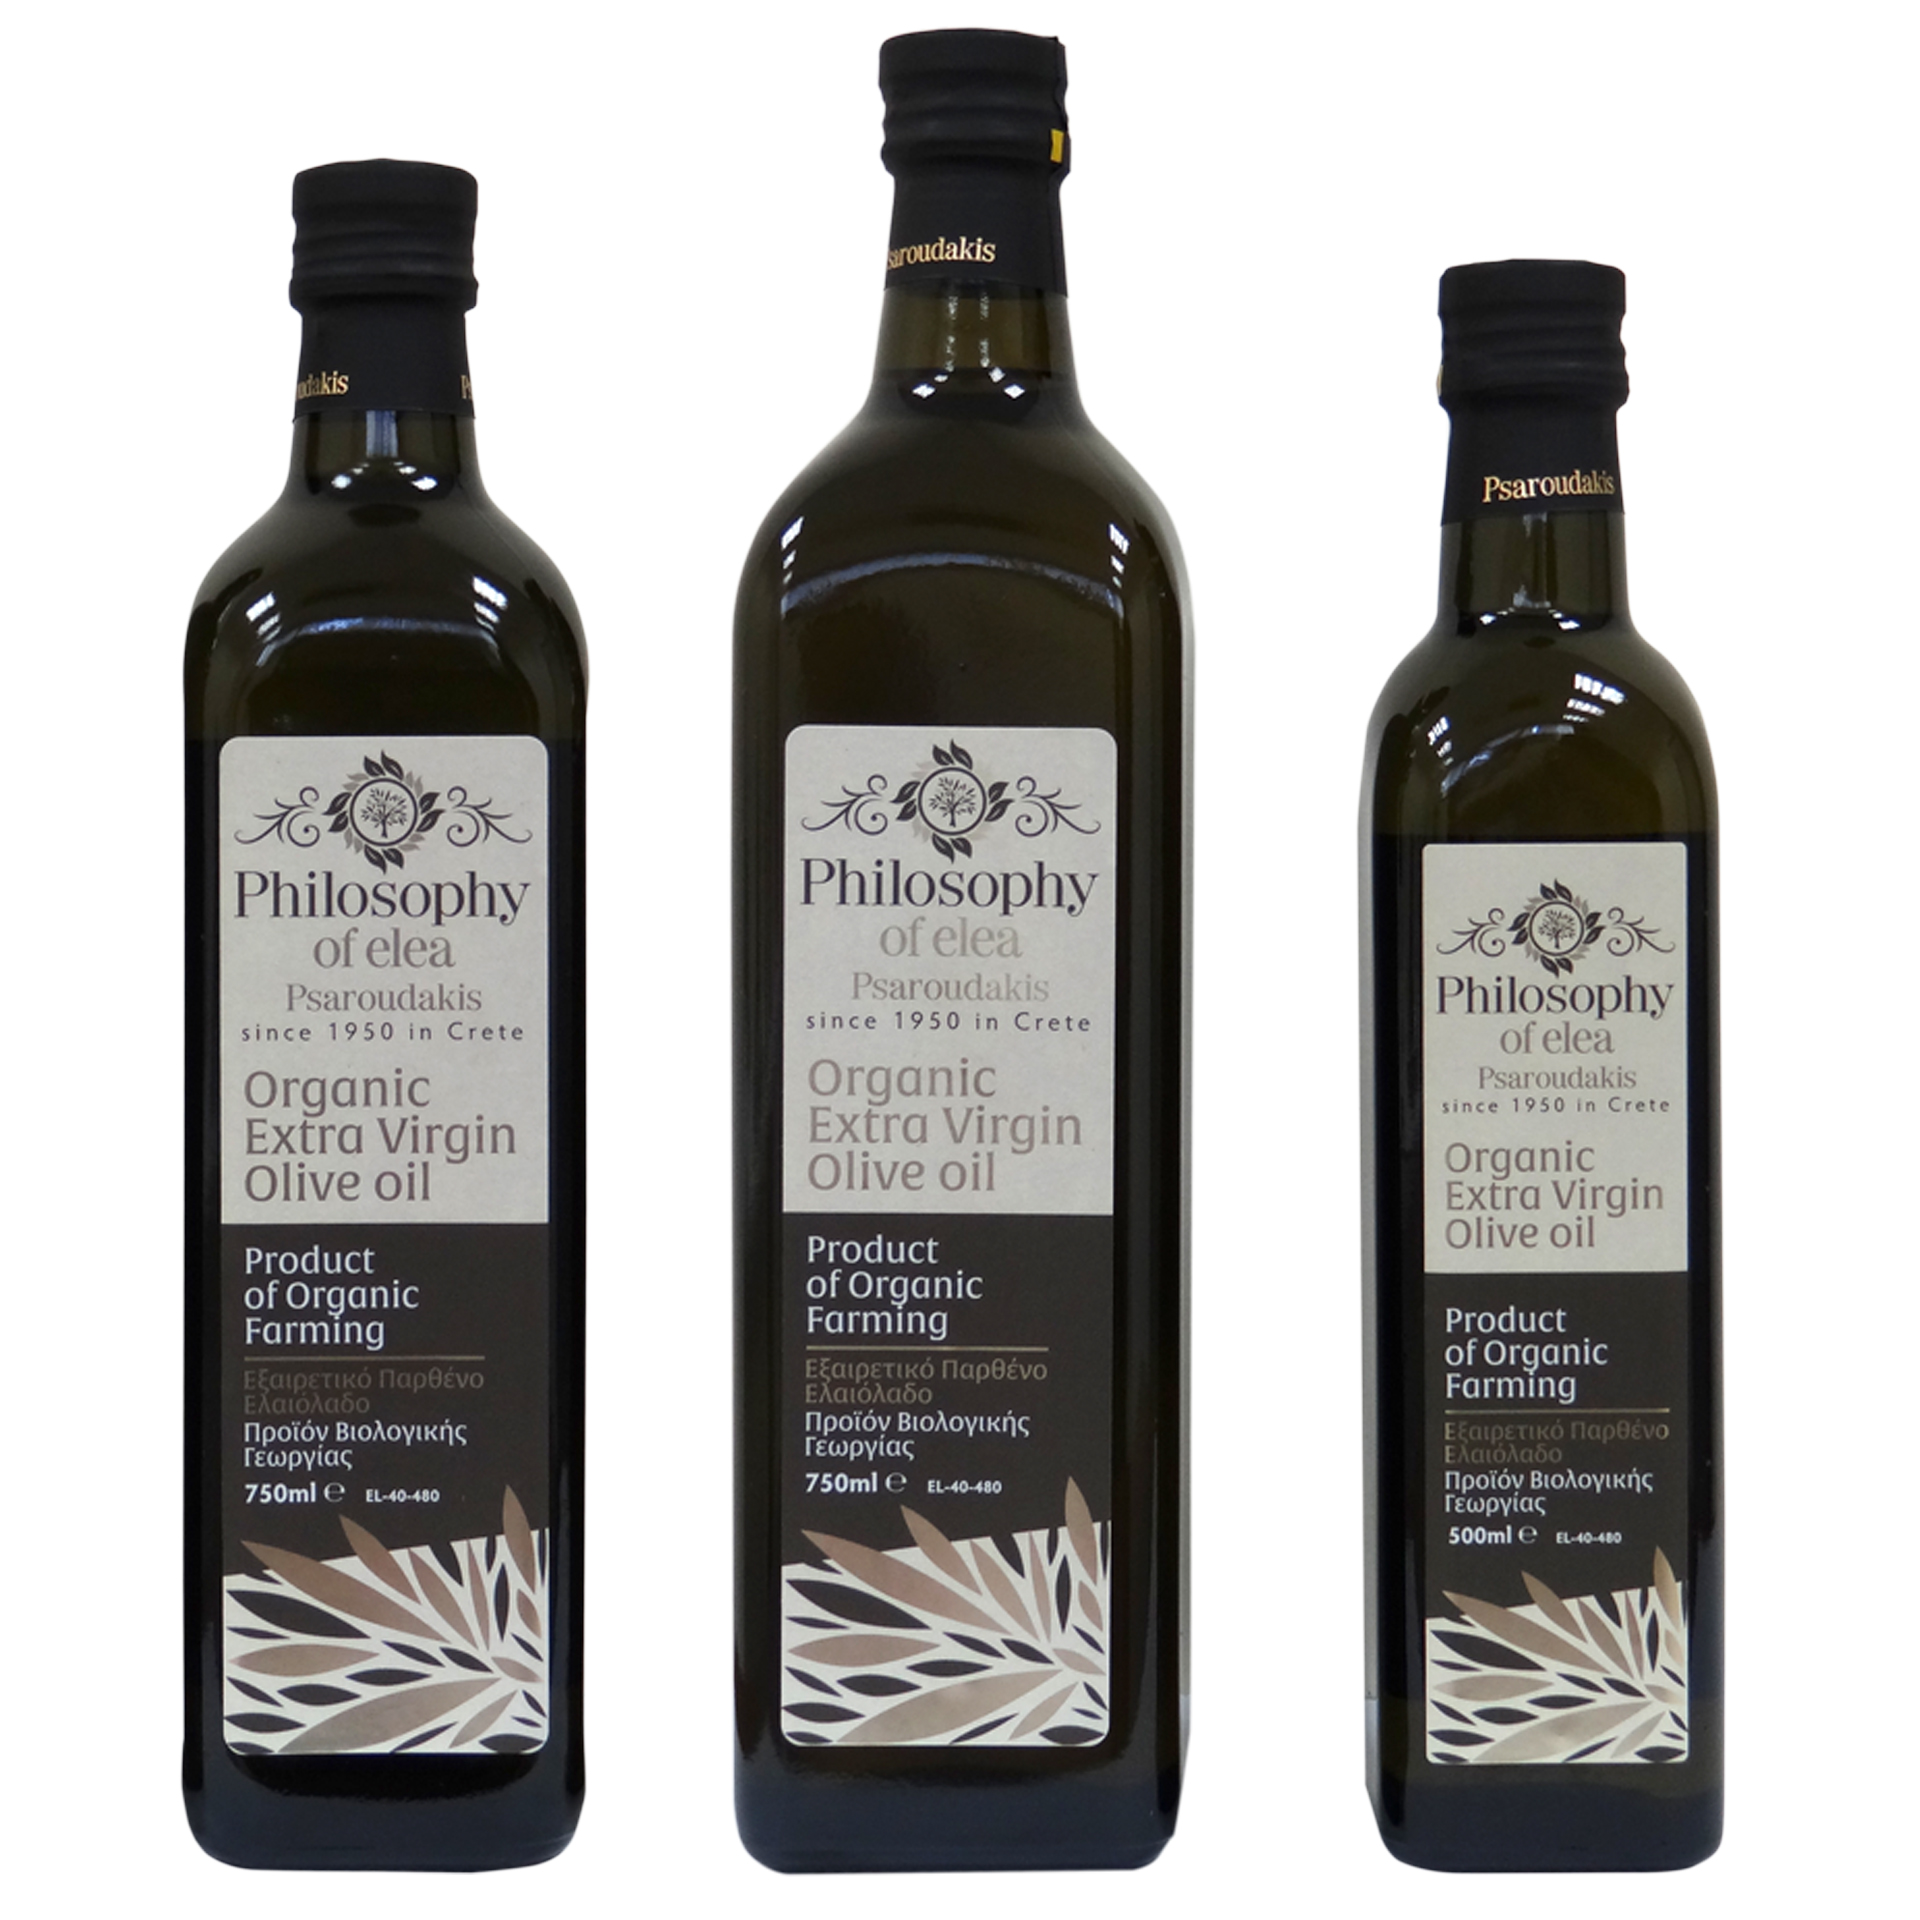 Organic - extra virgin olive oil